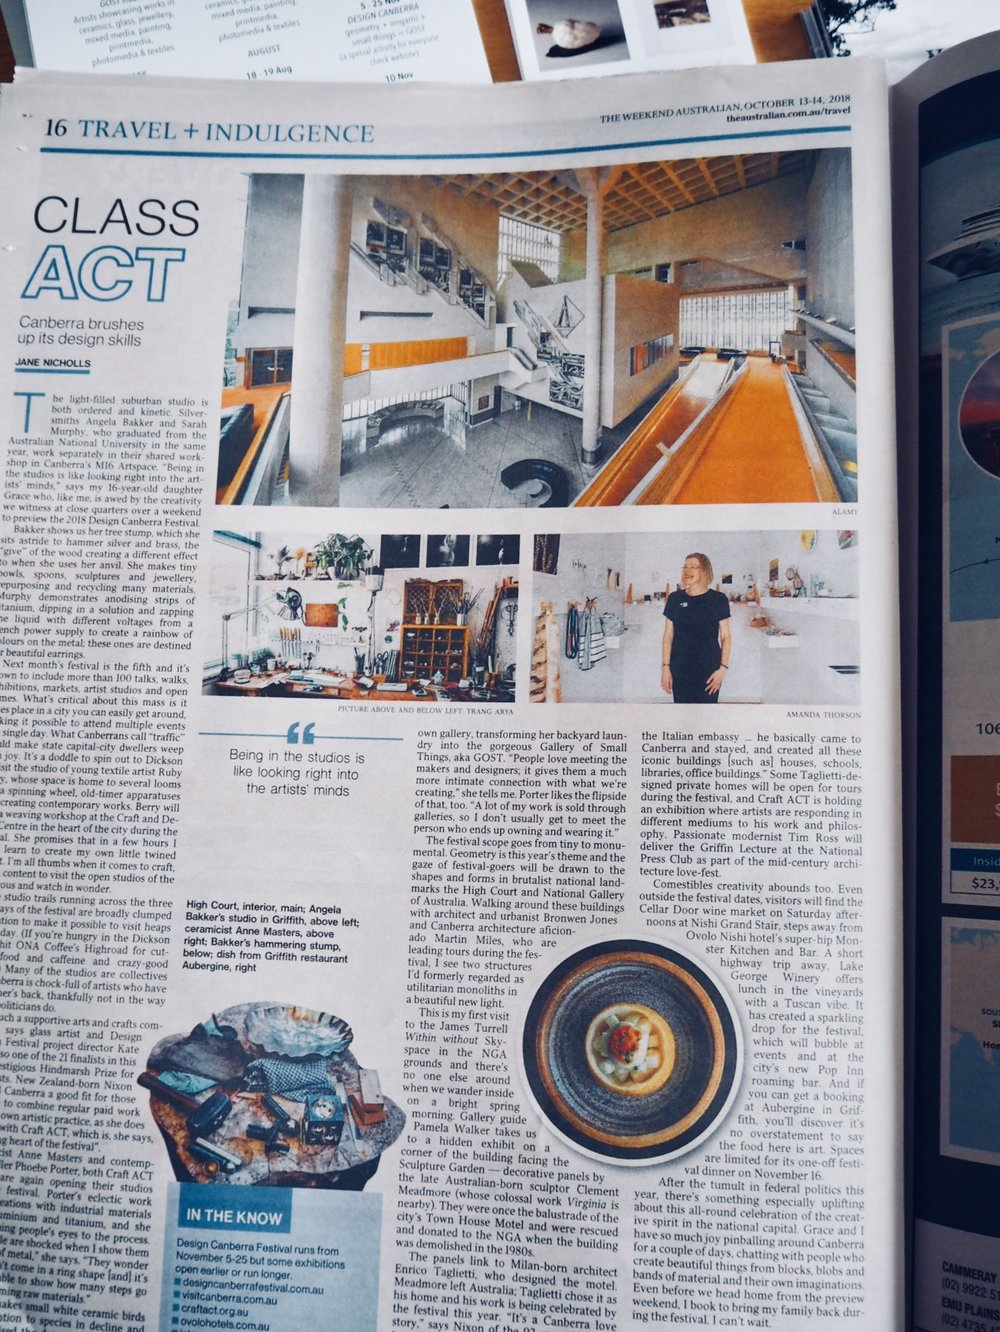 Media drum roll .... - Thanks to ABC Radio Canberra and Kim Huynh for his interview about GOST, it's dream and future plans. To hear the full story click here. We also appeared in the The Australian! Thanks to Craft ACT: Craft + Design Centre and Jane Nicholls for her fabulous article. I feel chuffed to be included with an amazing bunch of talented artists as part of this year's DESIGN Canberra. So save 2 - 25 November to see talks, open homes & studios, exhibitions and so much more.